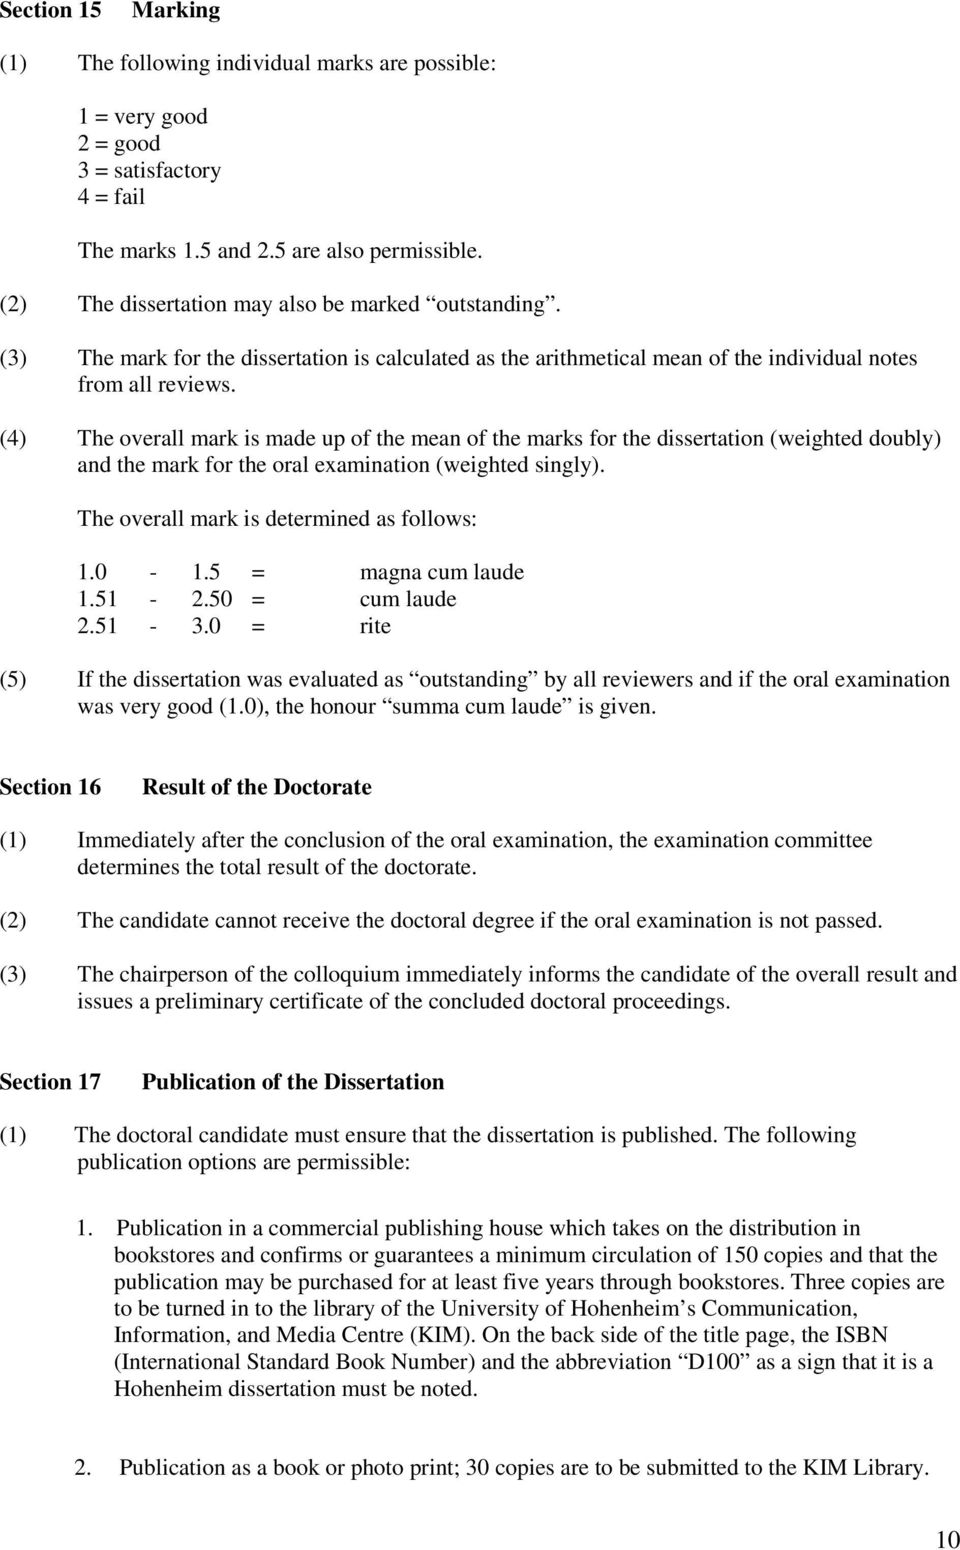 (4) The overall mark is made up of the mean of the marks for the dissertation (weighted doubly) and the mark for the oral examination (weighted singly). The overall mark is determined as follows: 1.